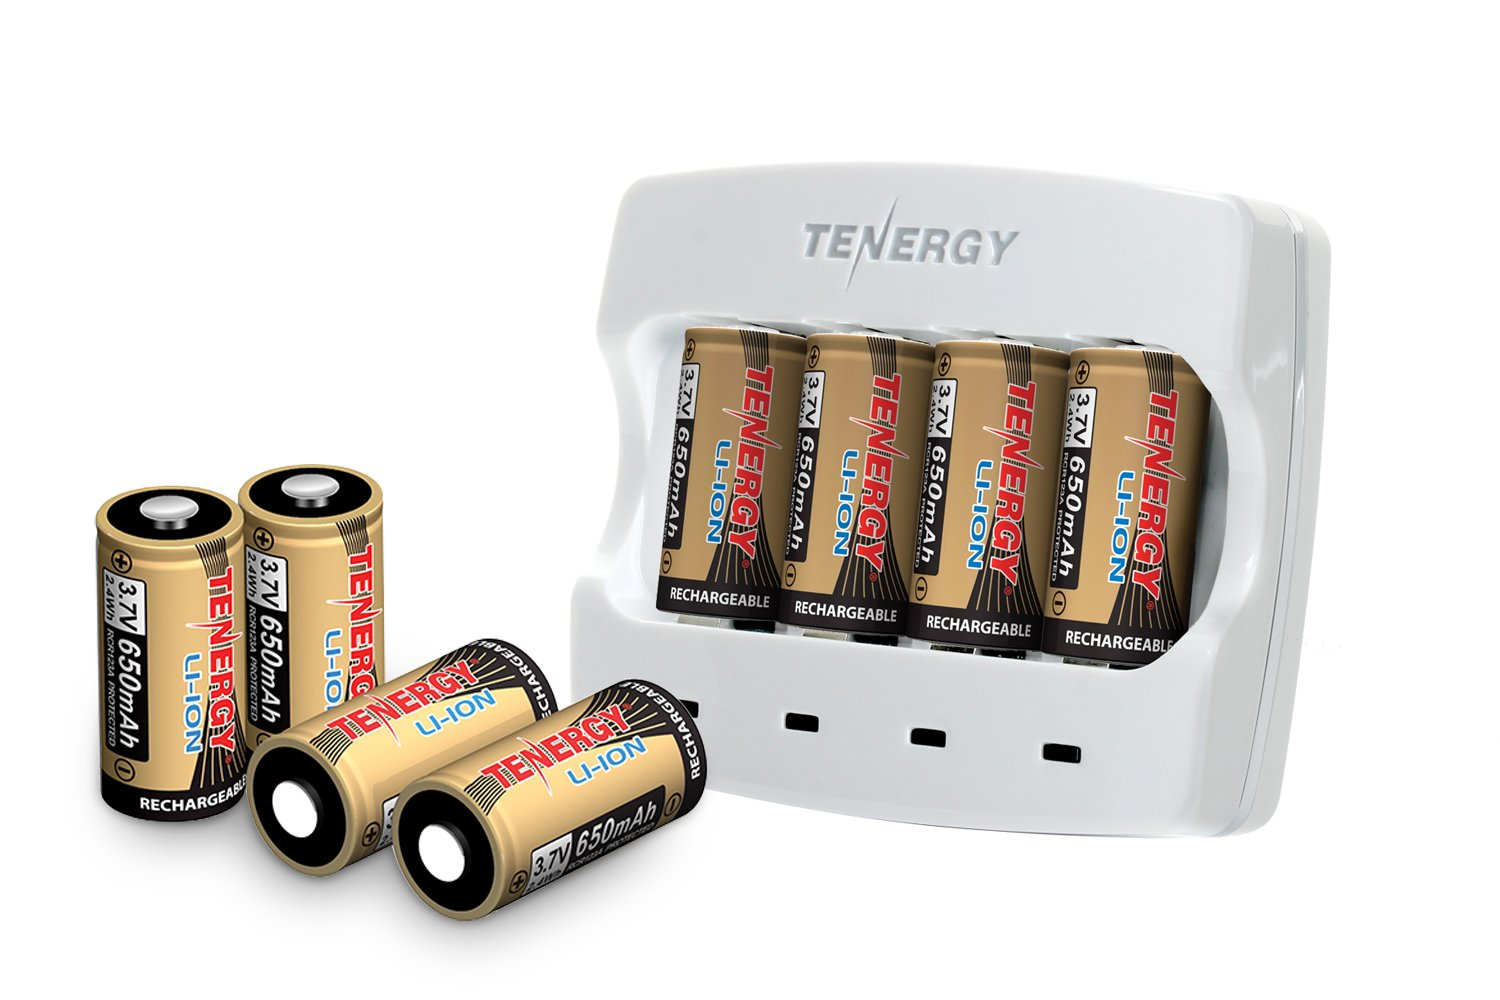 Arlo Certified: Tenergy 3.7V Arlo Battery Fast Charger and 650mAh RCR123A Li-ion Rechargeable Batteries for Arlo Wireless Security Cameras (VMC3030/VMK3200/VMS3330/3430/3530),UL UN Certified, 8-Pack by Tenergy